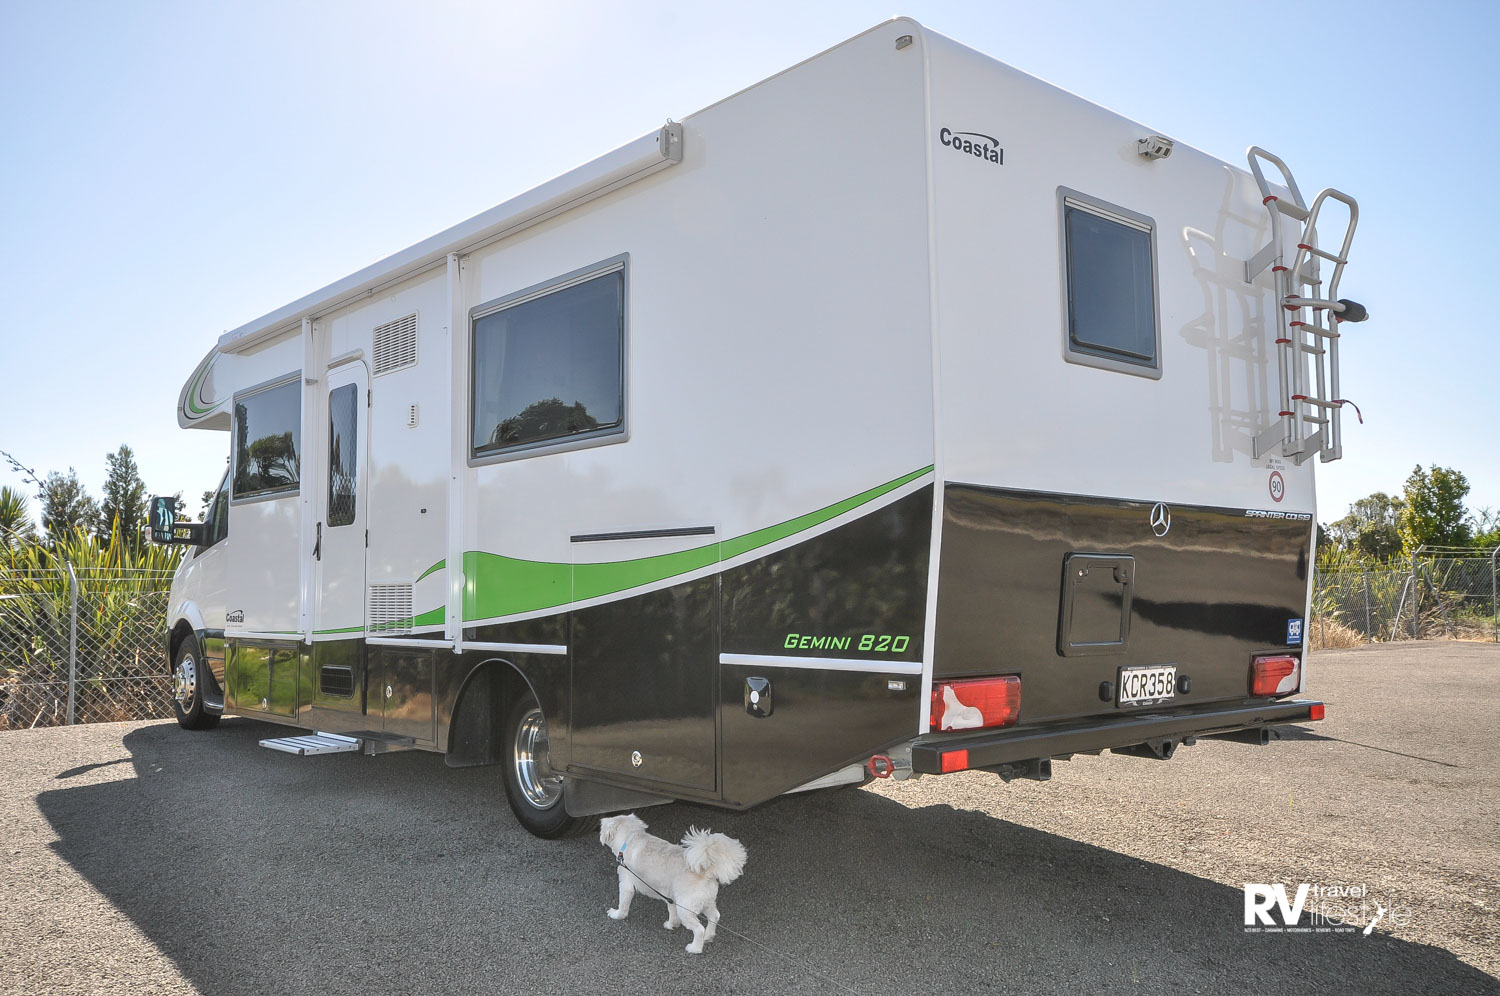 This Coastal Motorhome was interesting, I wanted to sniff out who had been there before